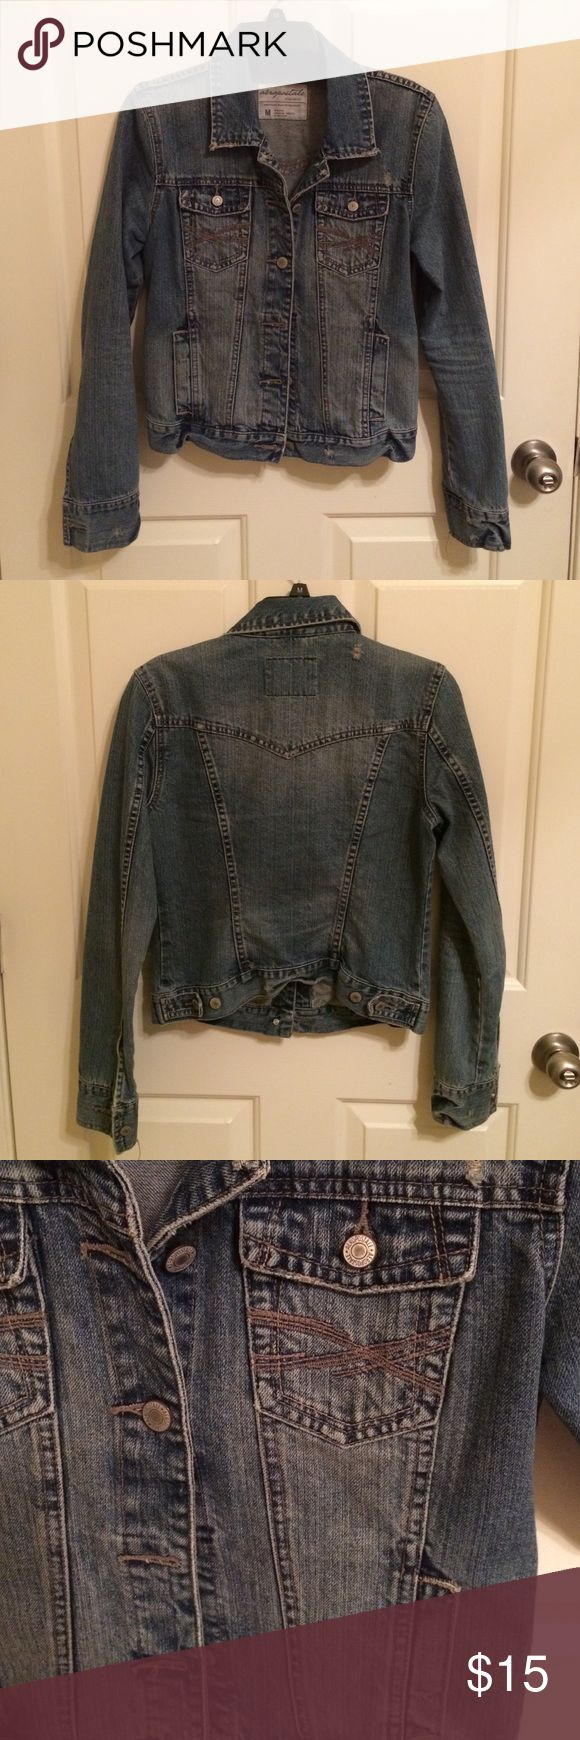 Classic Denim Jacket The perfect jean jacket. Has a classic fit, fitted but not too much. Will be more fitted on size medium (6-8) or have more of a boyfriend fit on small/xs. Has destressed look and a fairly dark wash. No flaws, great condition. Aeropostale Jackets & Coats Jean Jackets